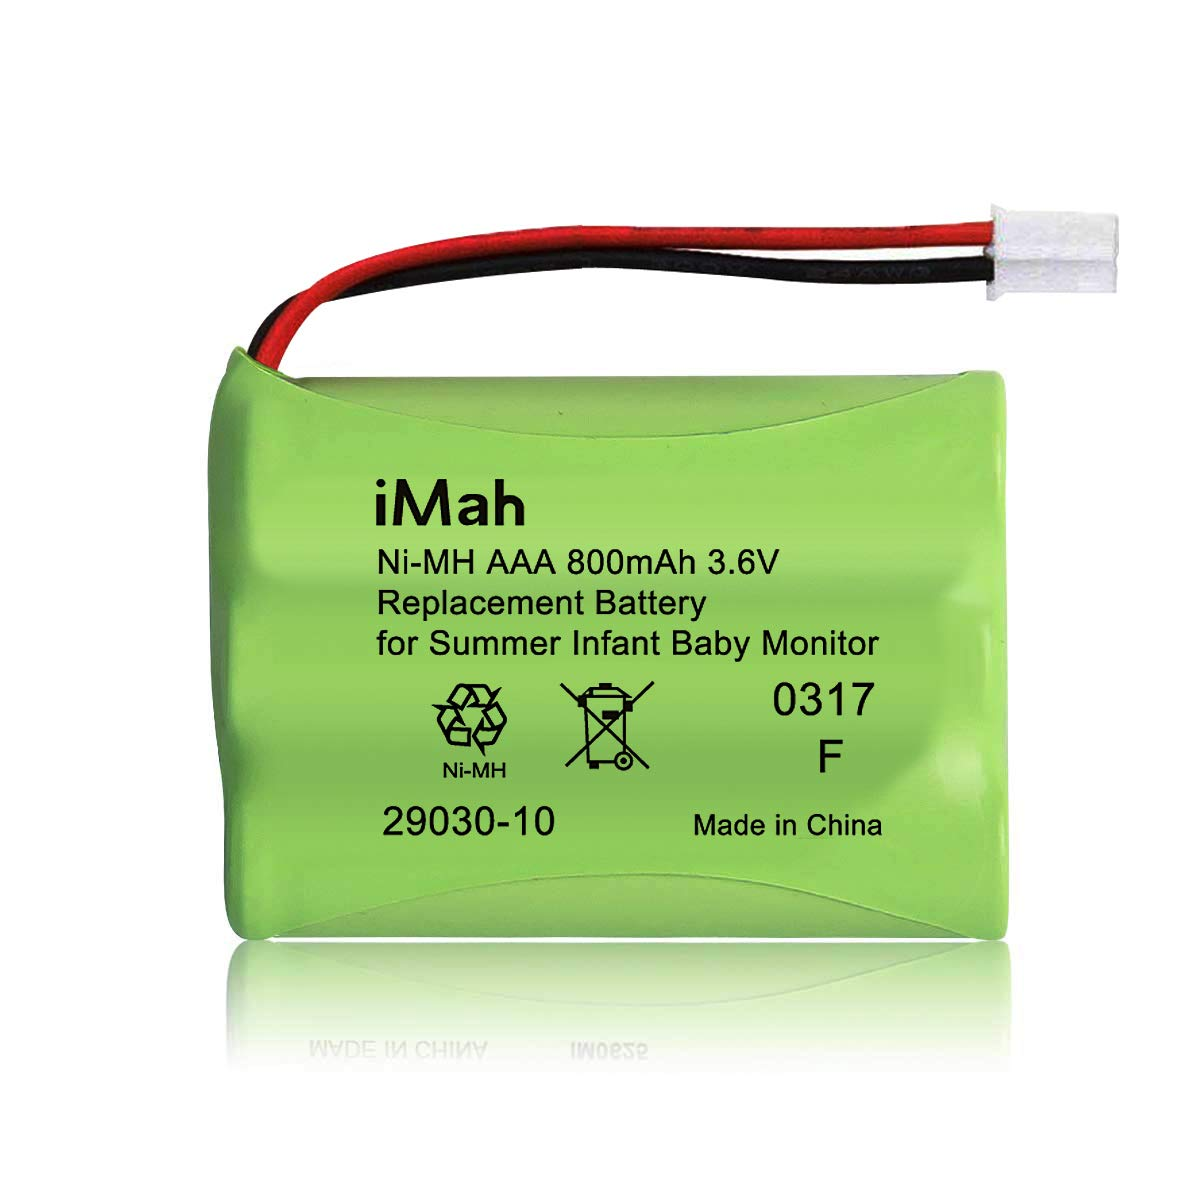 iMah Ryme B25 29030-10 Battery Compatible with Summer Infant Baby Monitor Battery Part Number 29030-10 | 3.6V 800mAh Ni-MH Connector with Square Hole